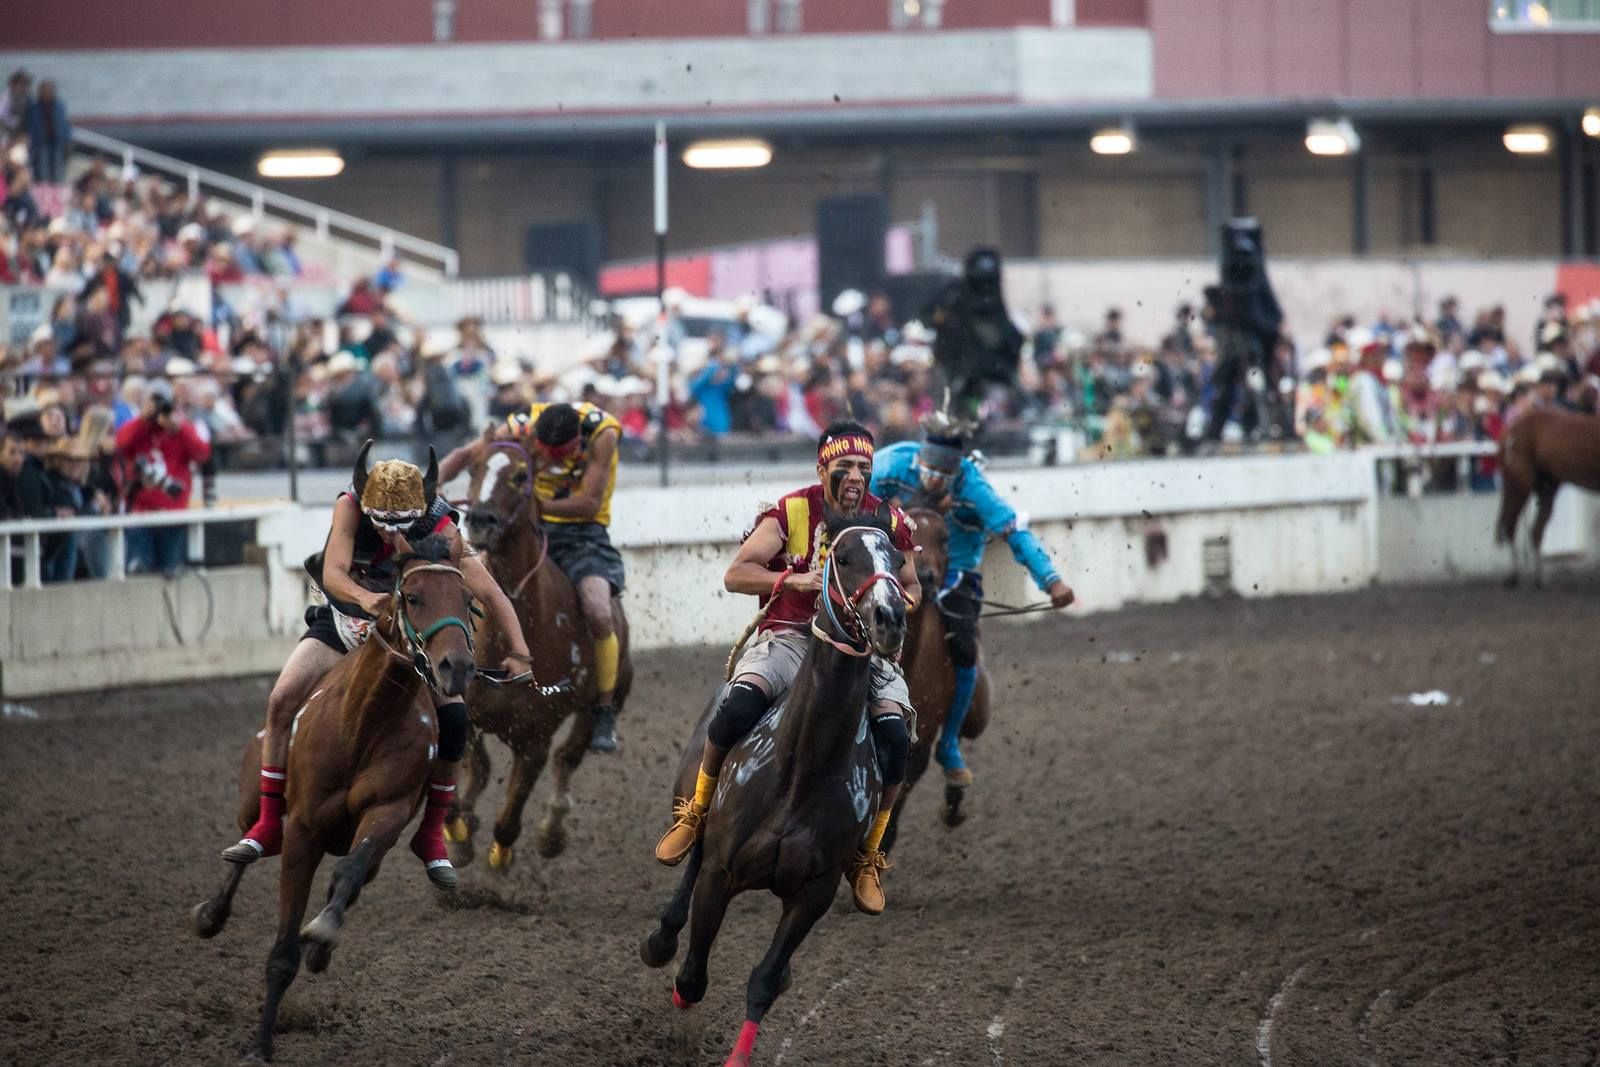 Indian relay team from Blackfeet Nation wins title at Calgary Stampede